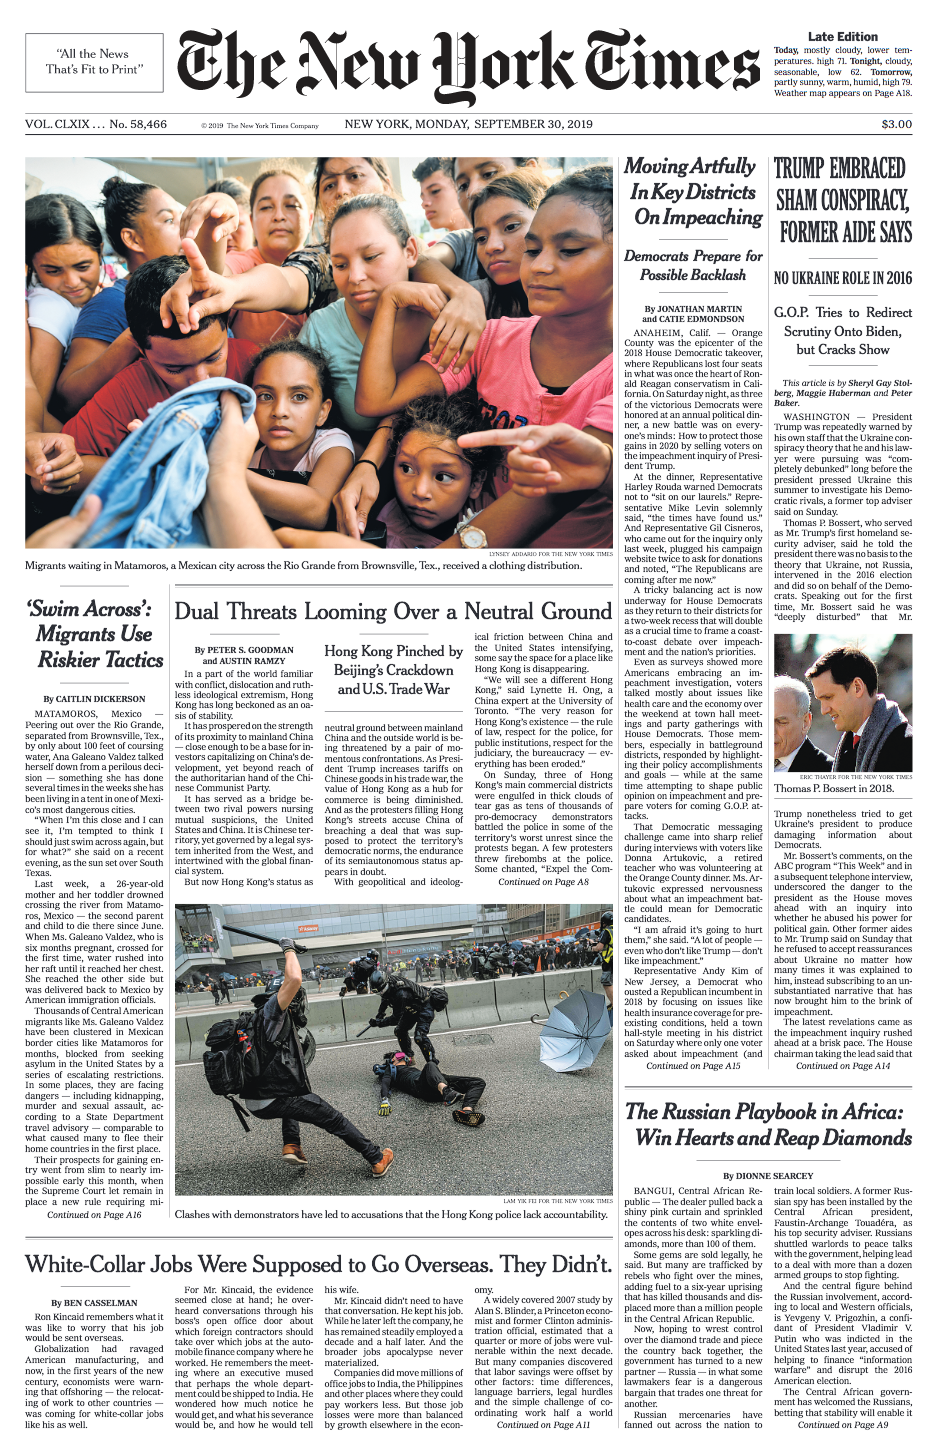 NYTimes_FrontPage_093019.png